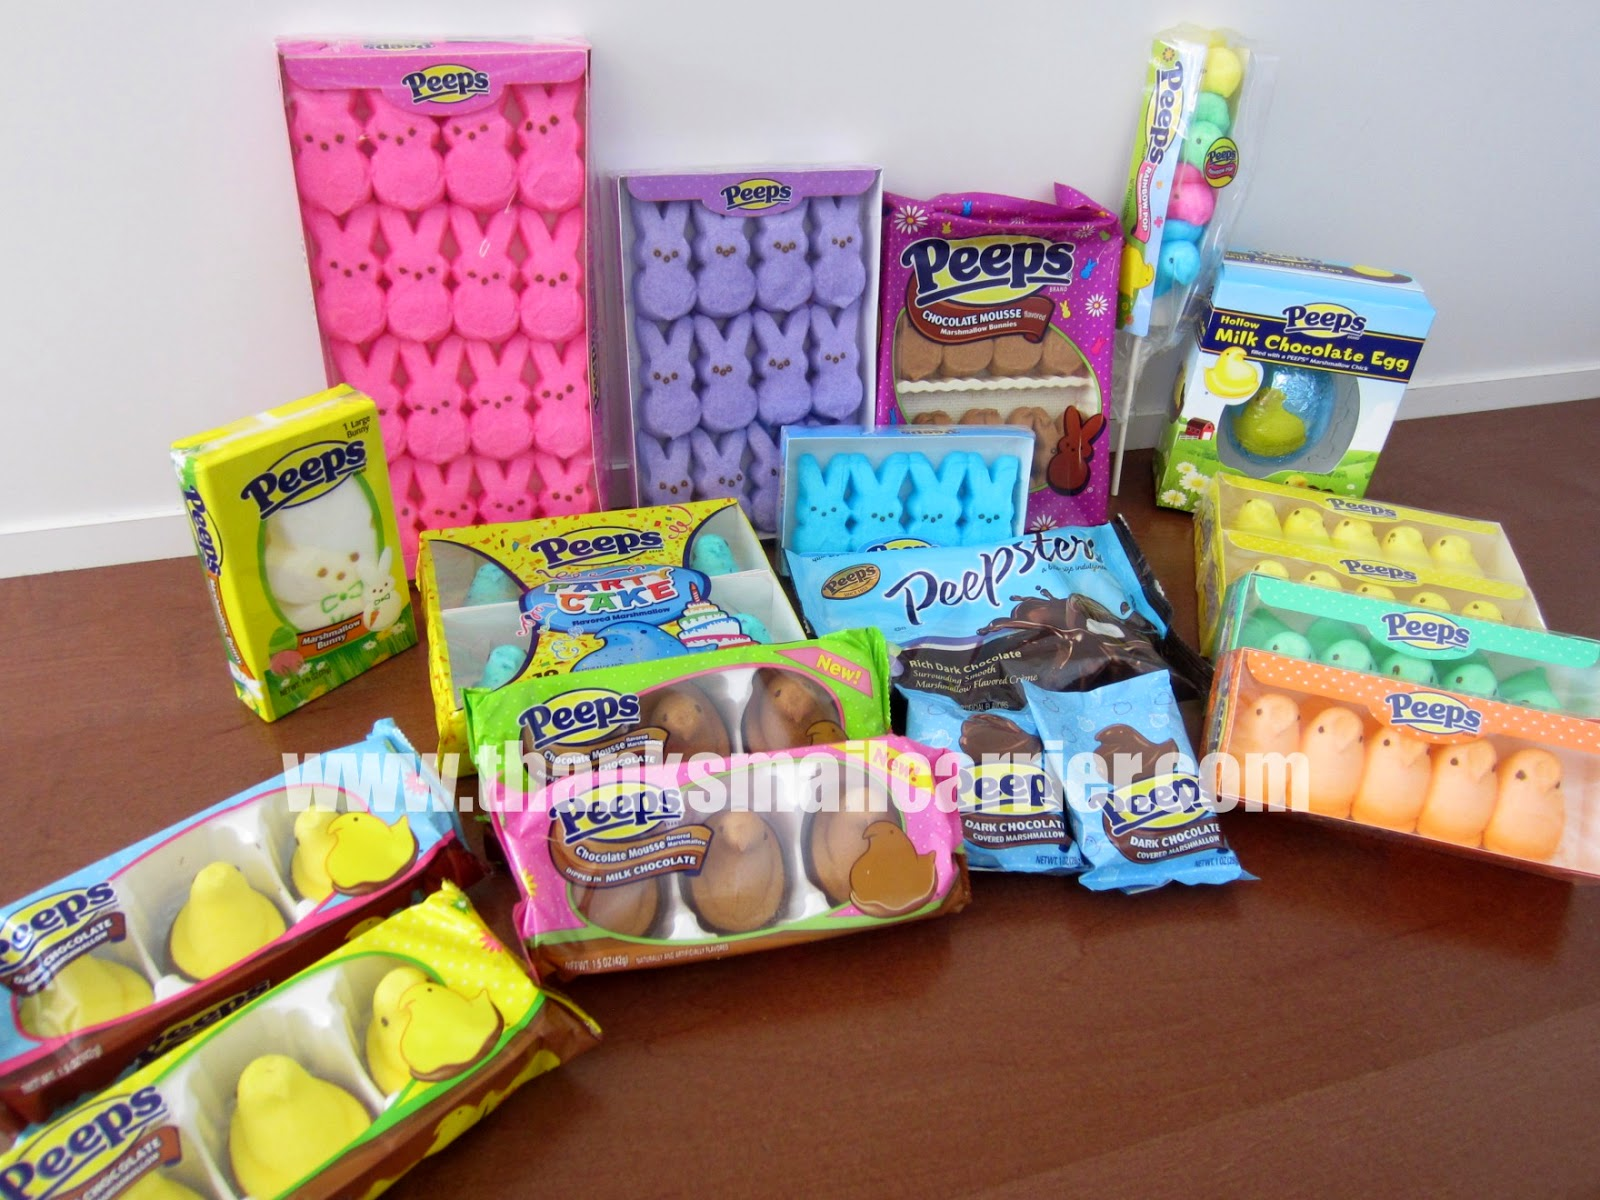 Peeps review